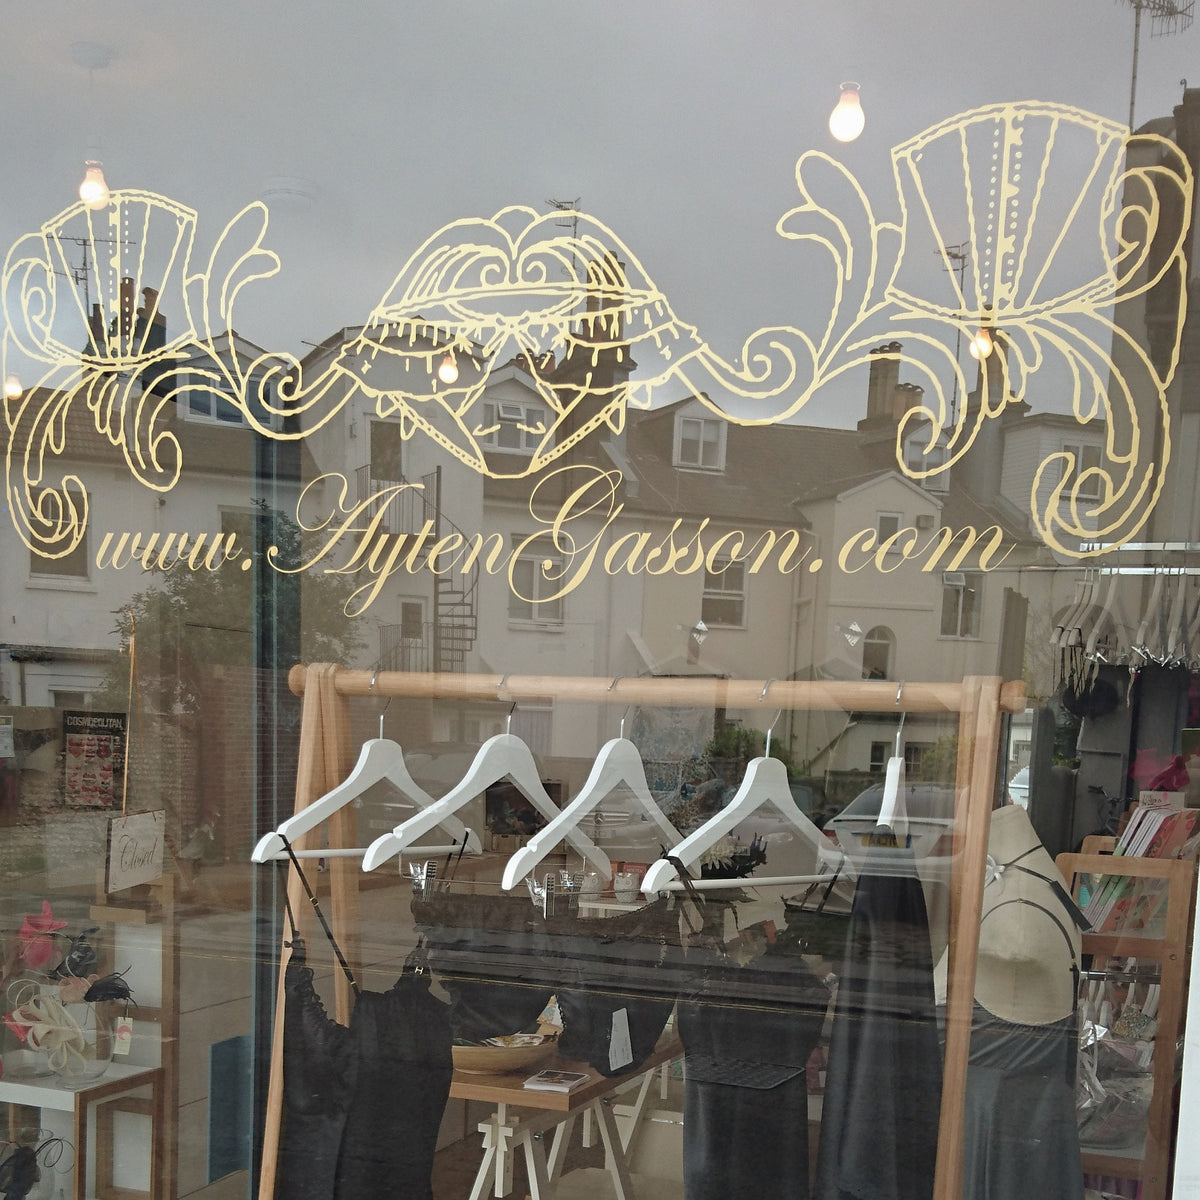 2de9f8a5ae Introducing The Ayten Gasson Boutique In Brighton